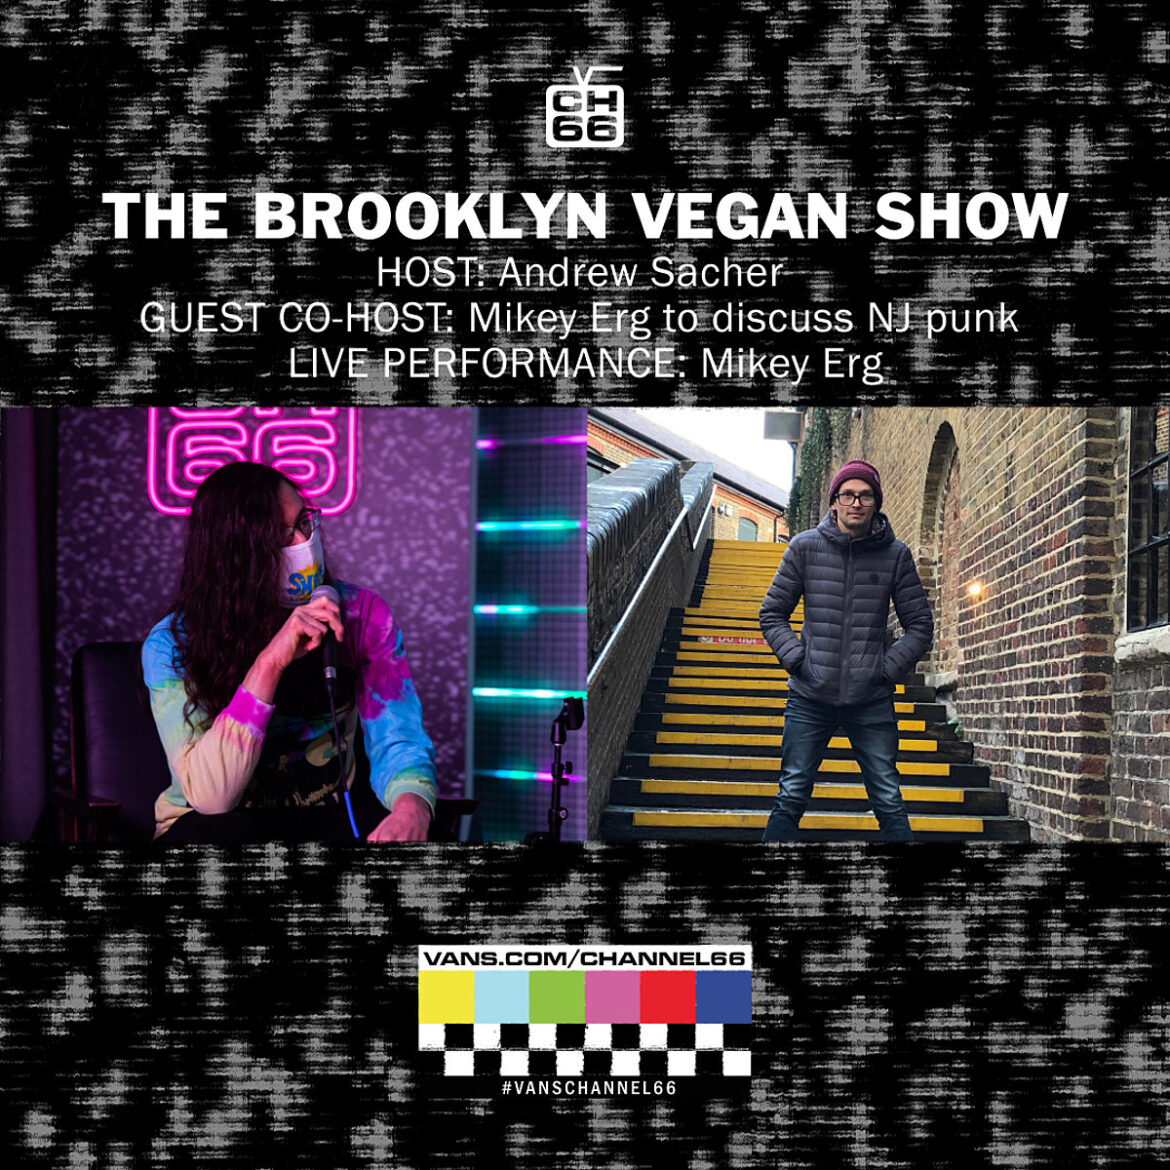 Mikey Erg performing & chatting about NJ punk on The BrooklynVegan Show this week